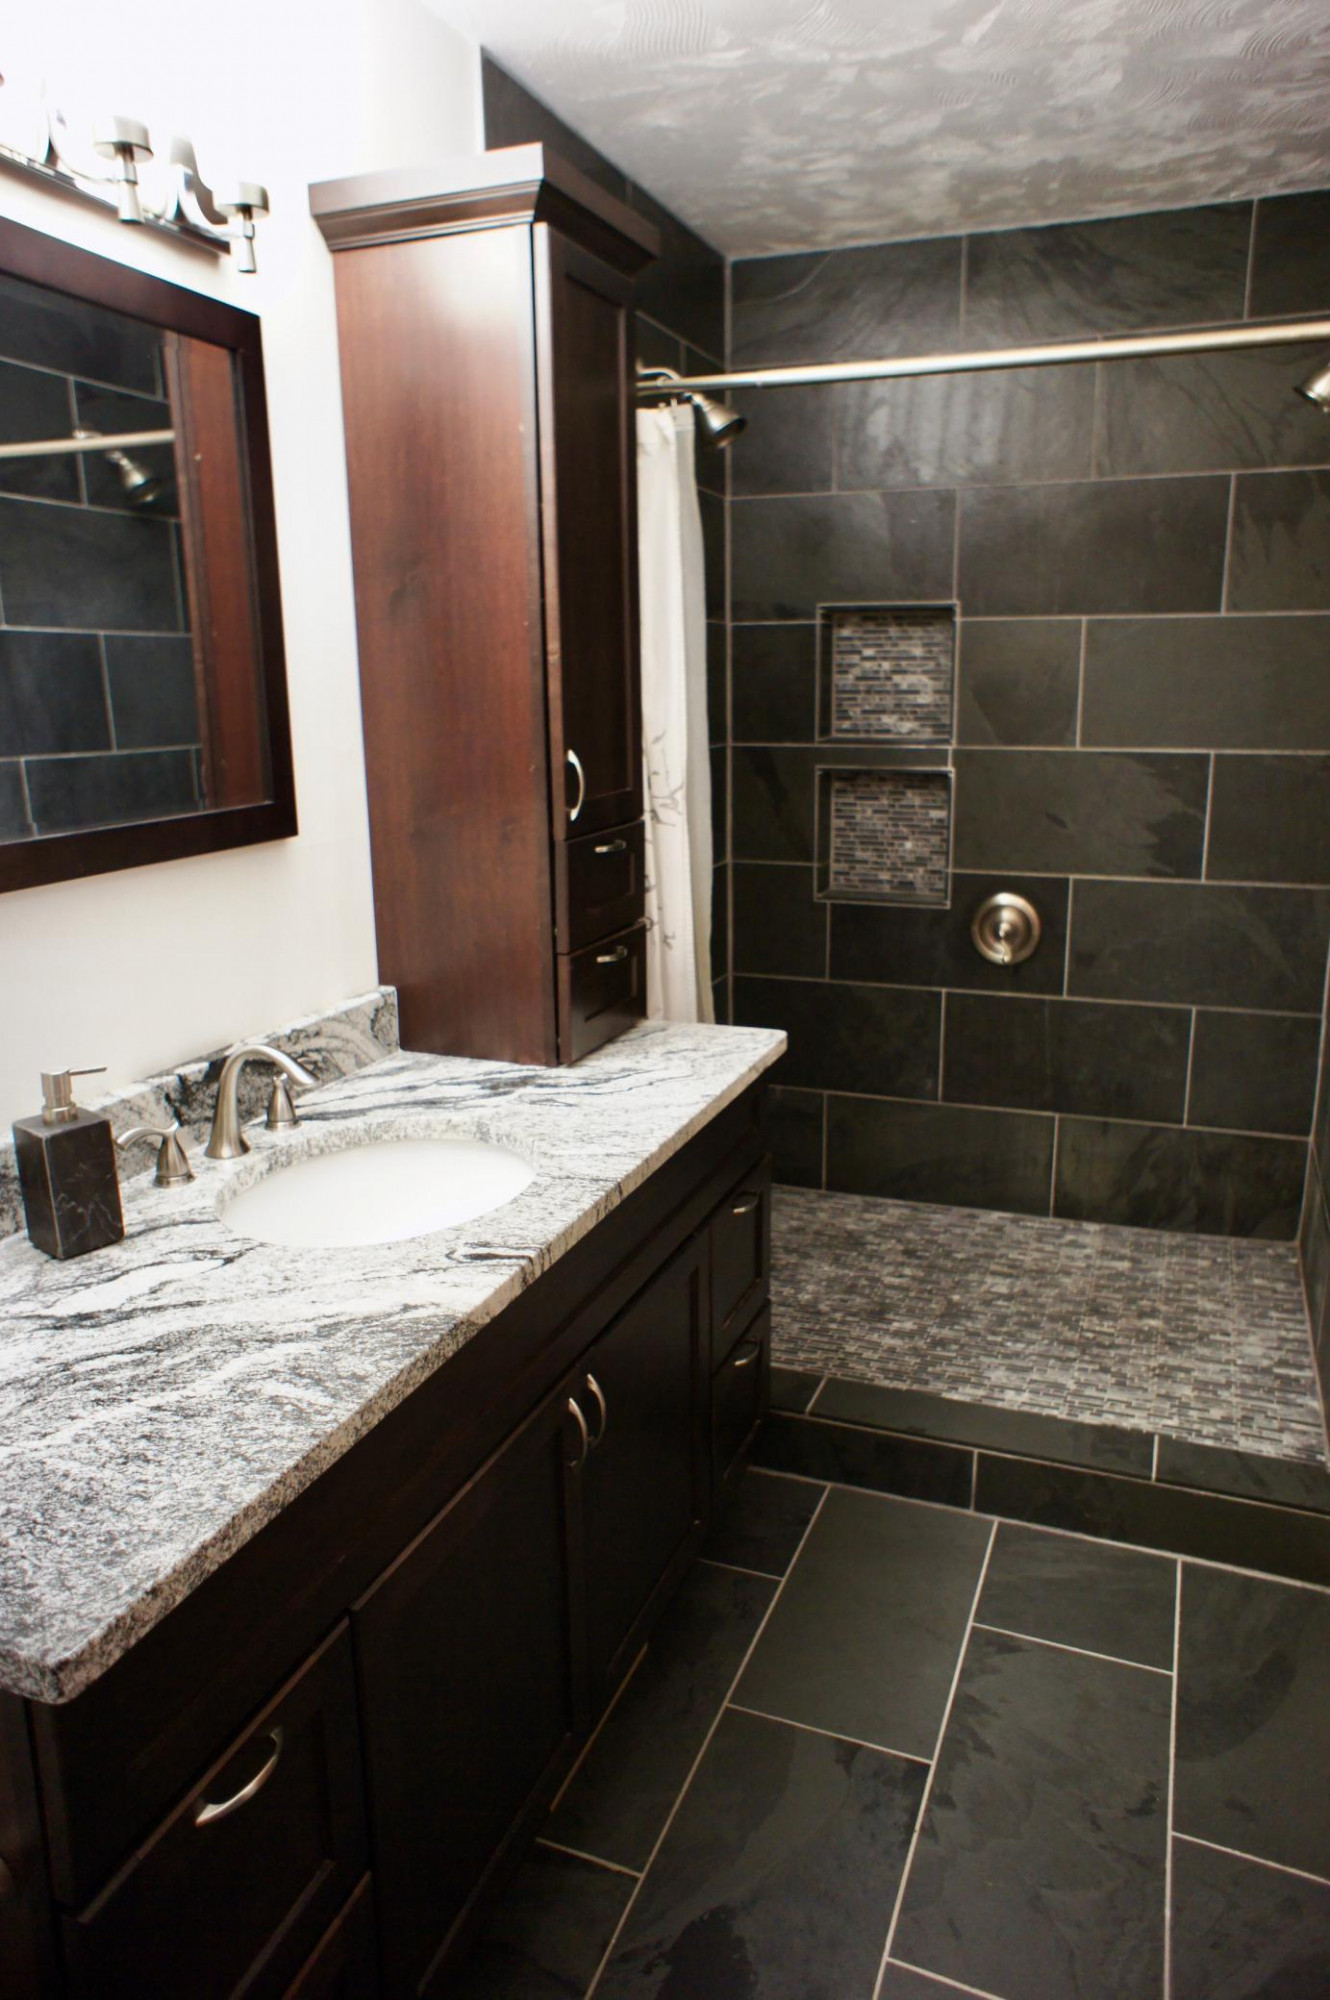 Yes, this bathroom is nicely remodeled too!